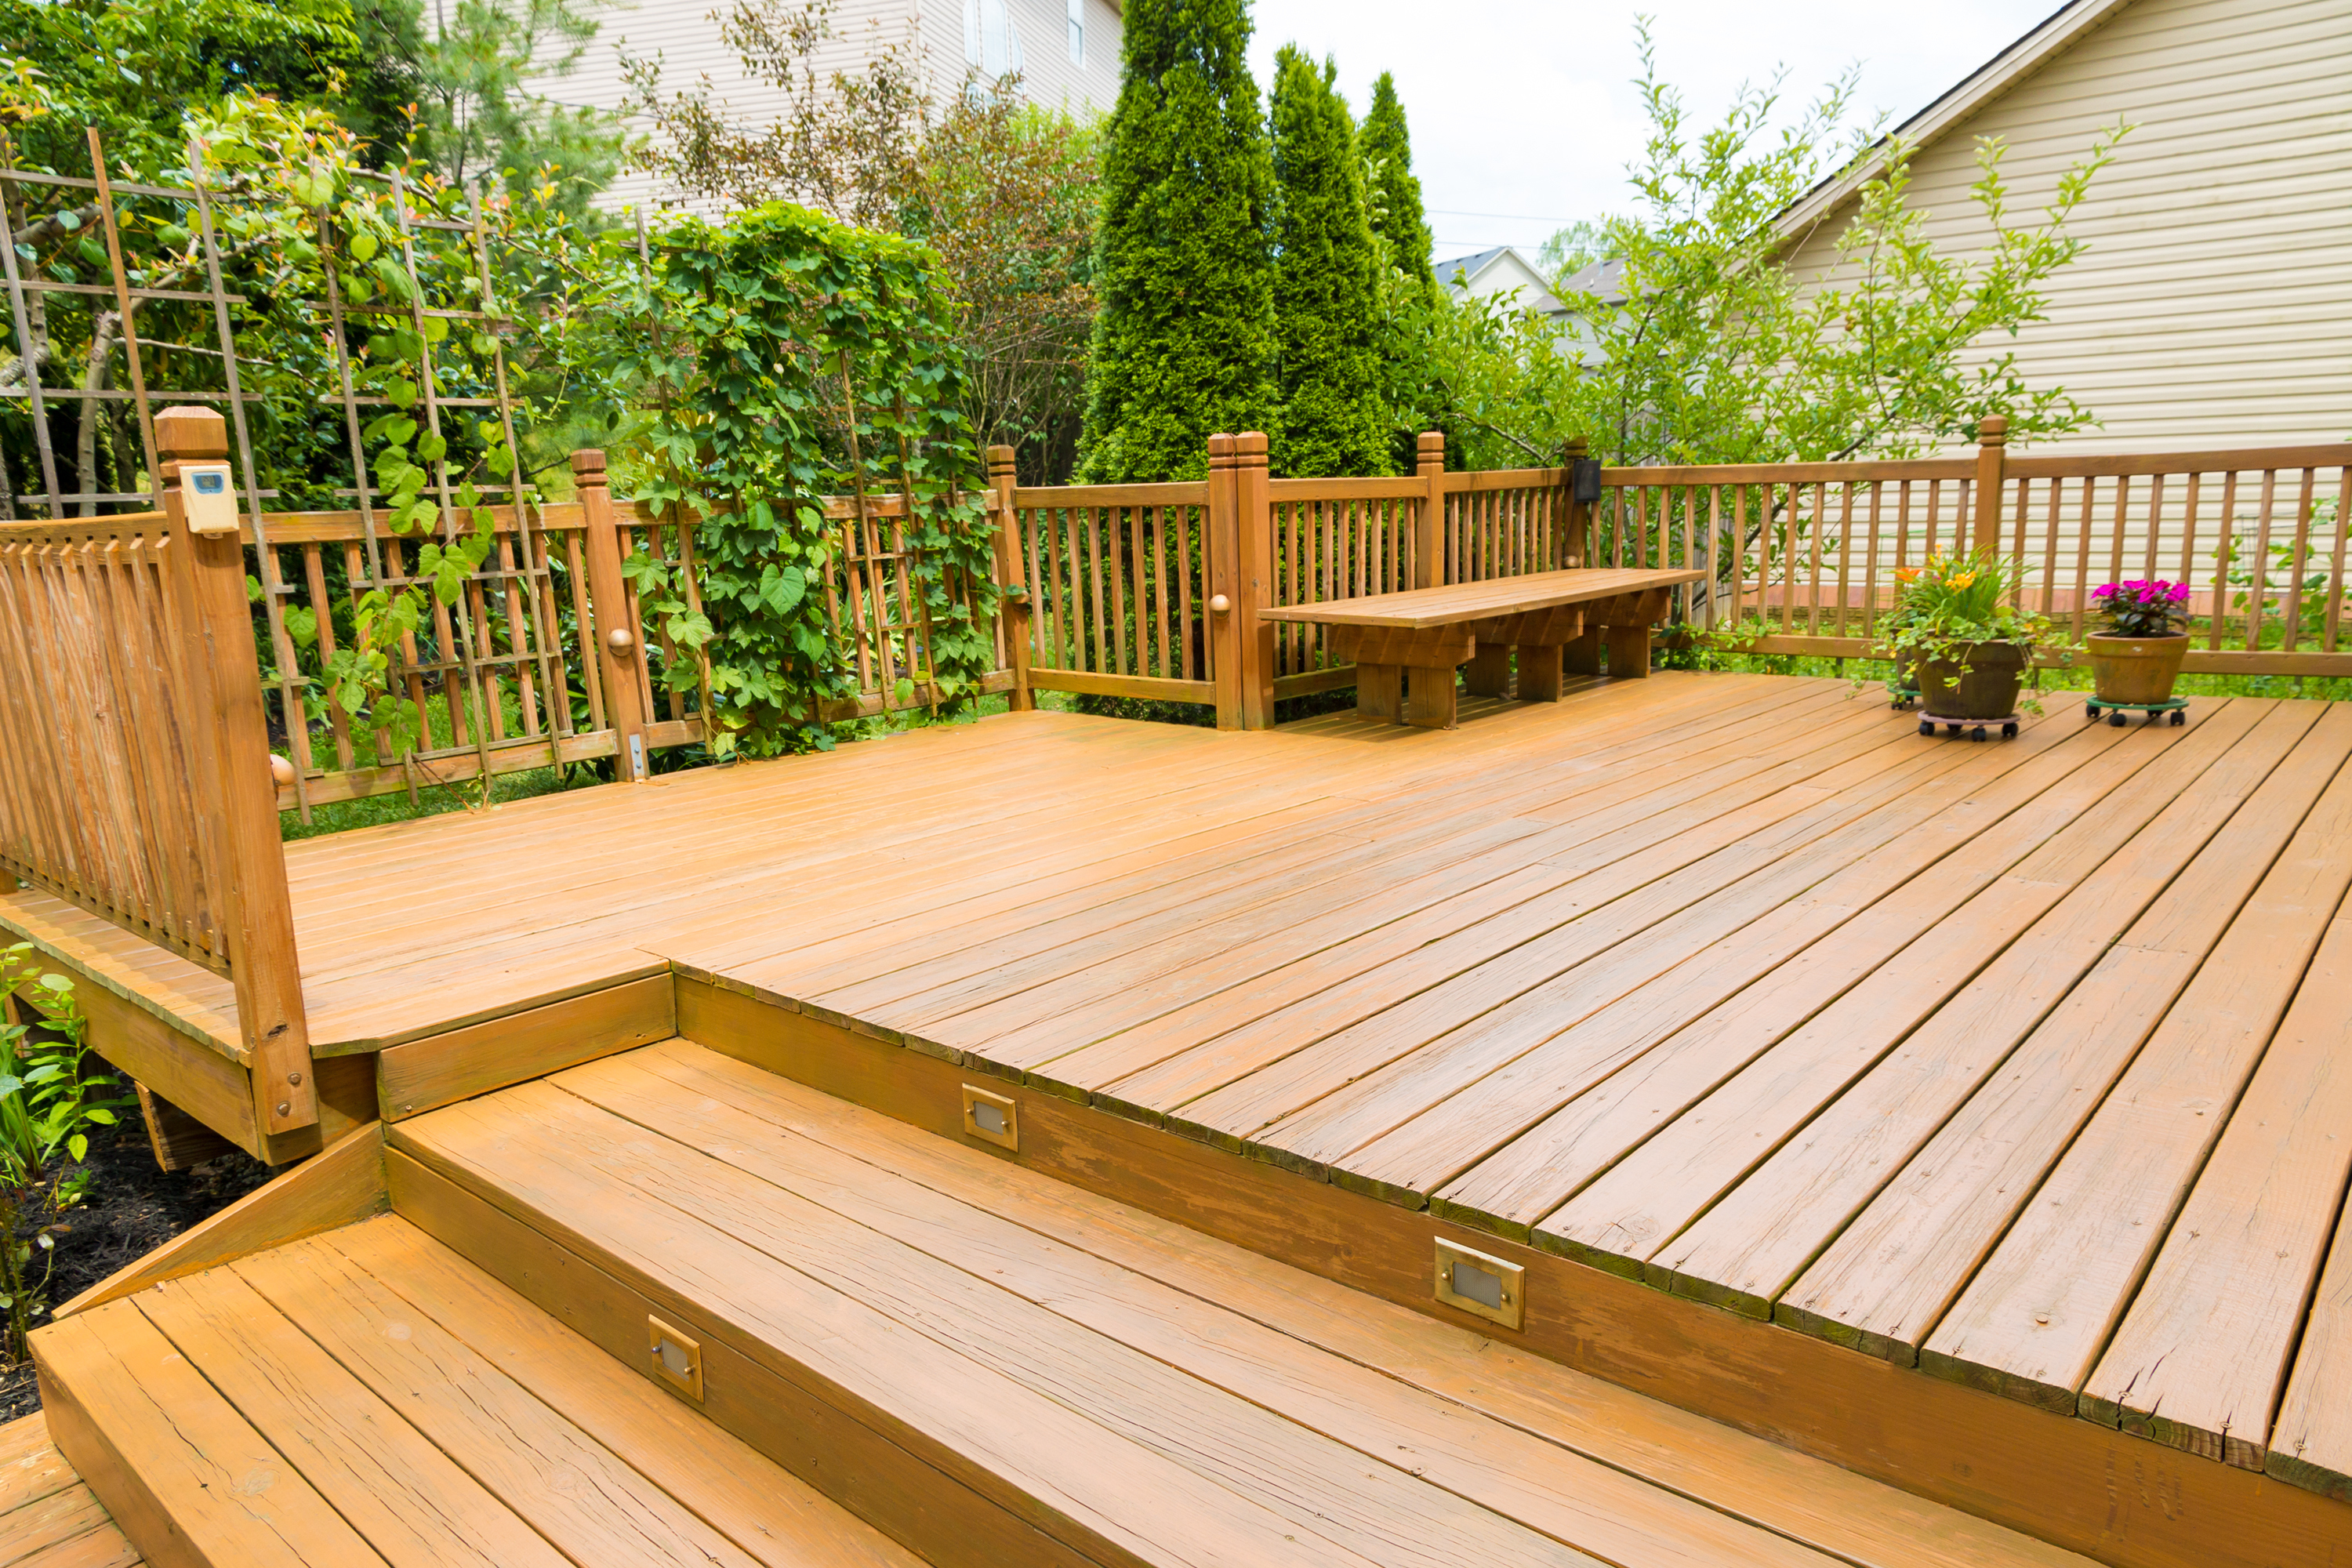 The Average Cost for a 2nd Story Deck | Home Guides | SF Gate on 14x16 deck plans, 12x25 deck plans, 20x24 deck plans, 15x15 deck plans, 12x14 deck plans, 12x40 deck plans, 16x32 deck plans, 18x24 deck plans, 12x26 deck plans, 10x24 deck plans, 16x26 deck plans, 14x14 deck plans, 20x26 deck plans, 12x32 deck plans, 15x20 deck plans, 6x8 deck plans, 14x28 deck plans, 12x13 deck plans, 11x14 deck plans, 18x18 deck plans,